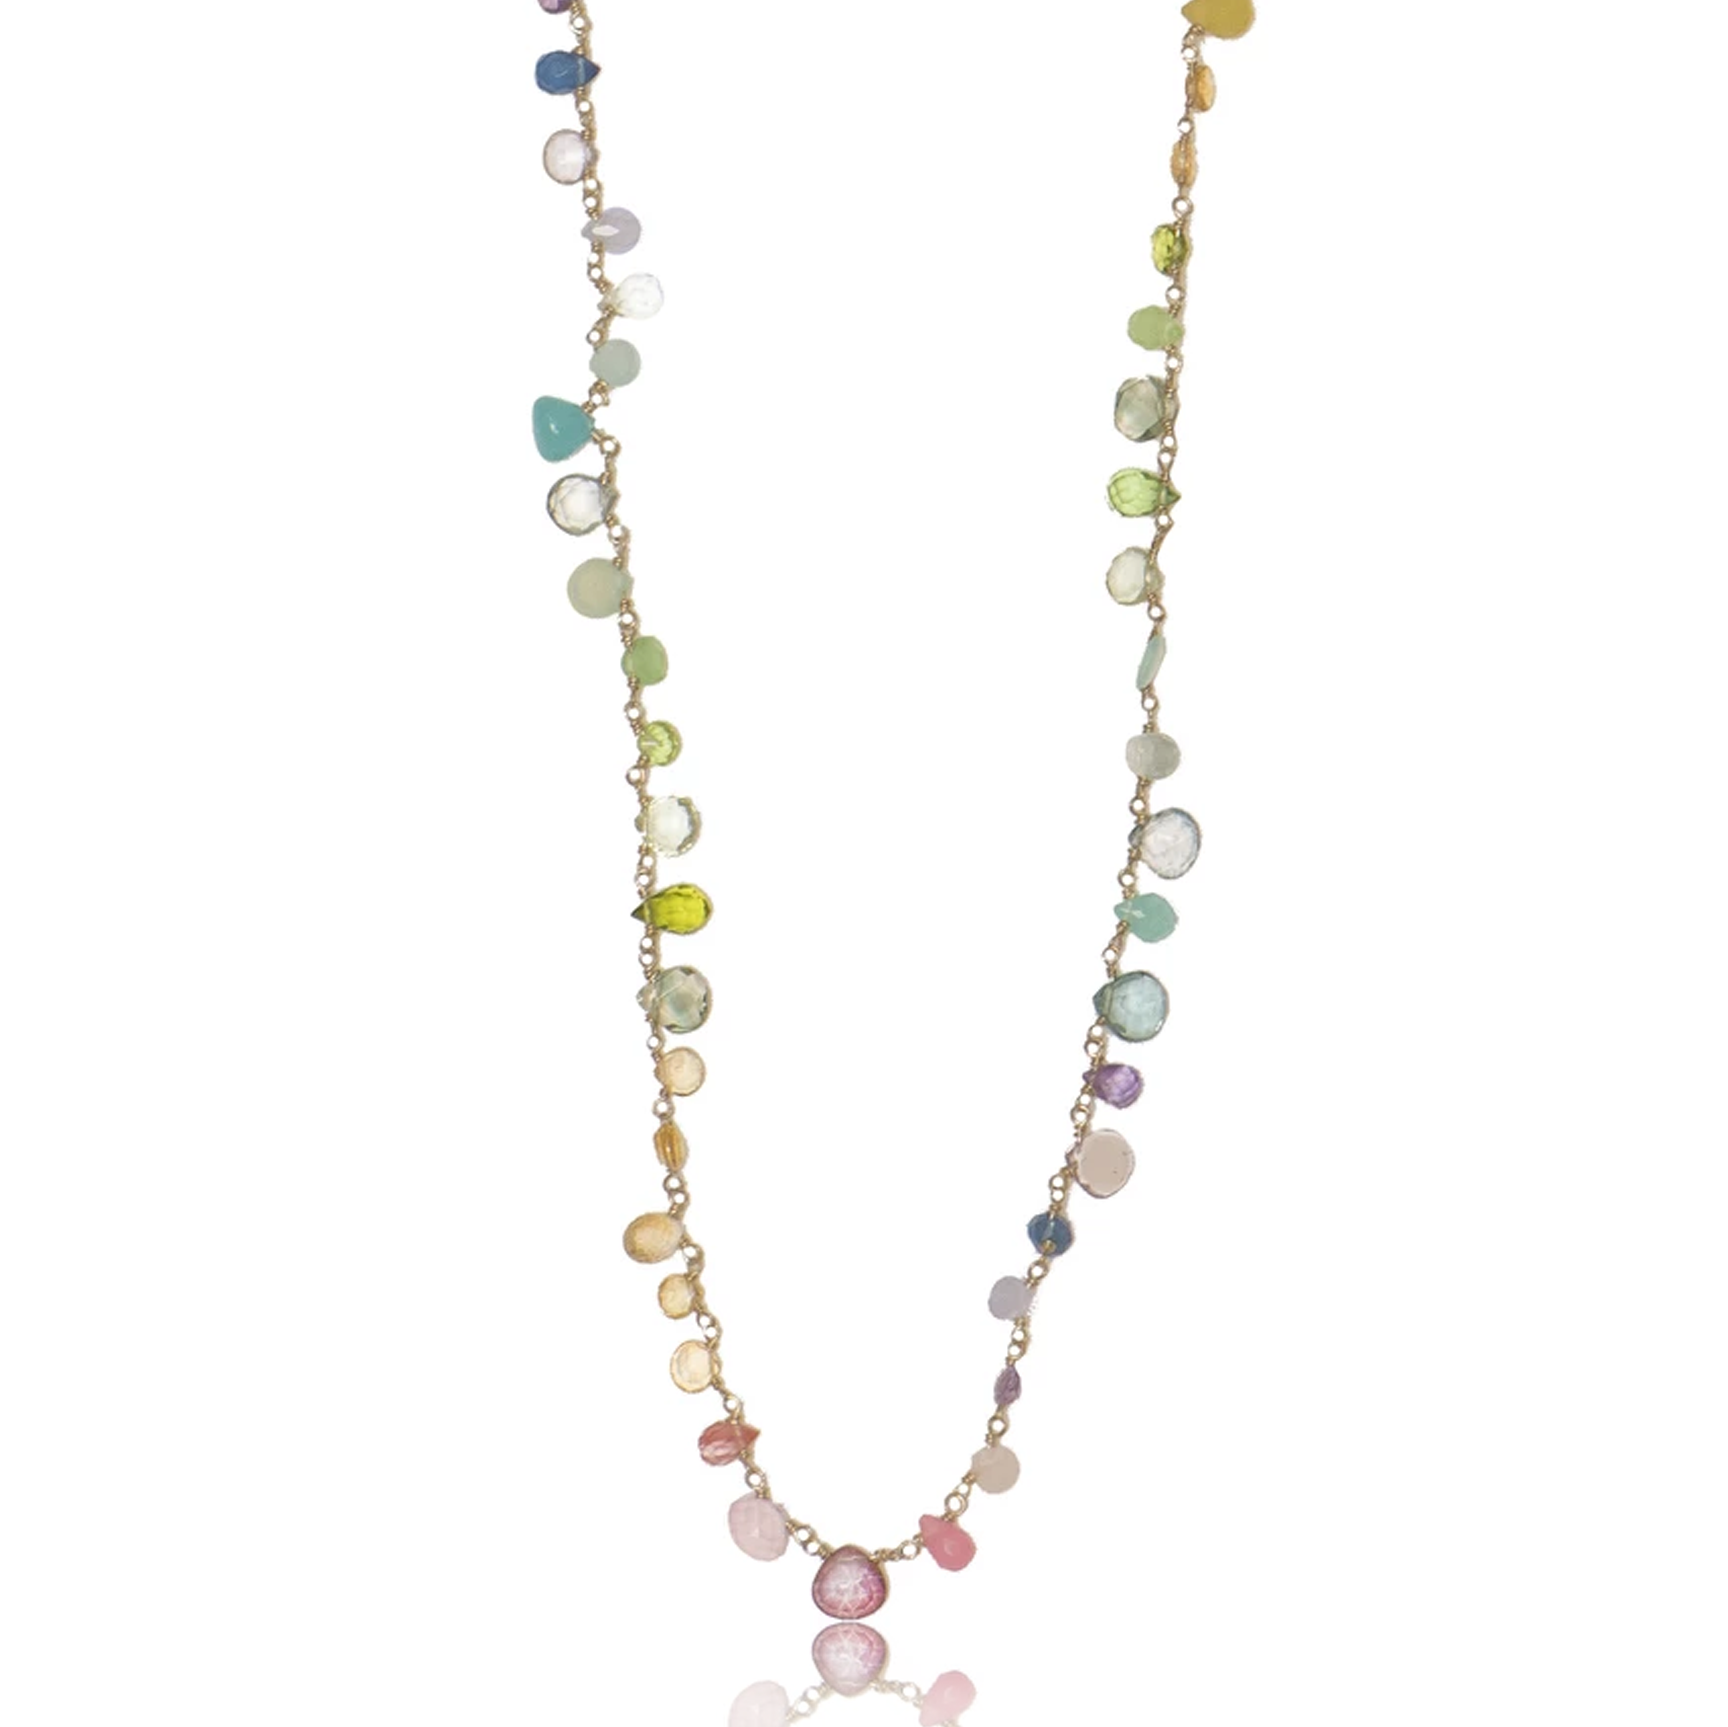 Long Pastel Ombre Necklace with Assorted Pastel Semi Precious Stones